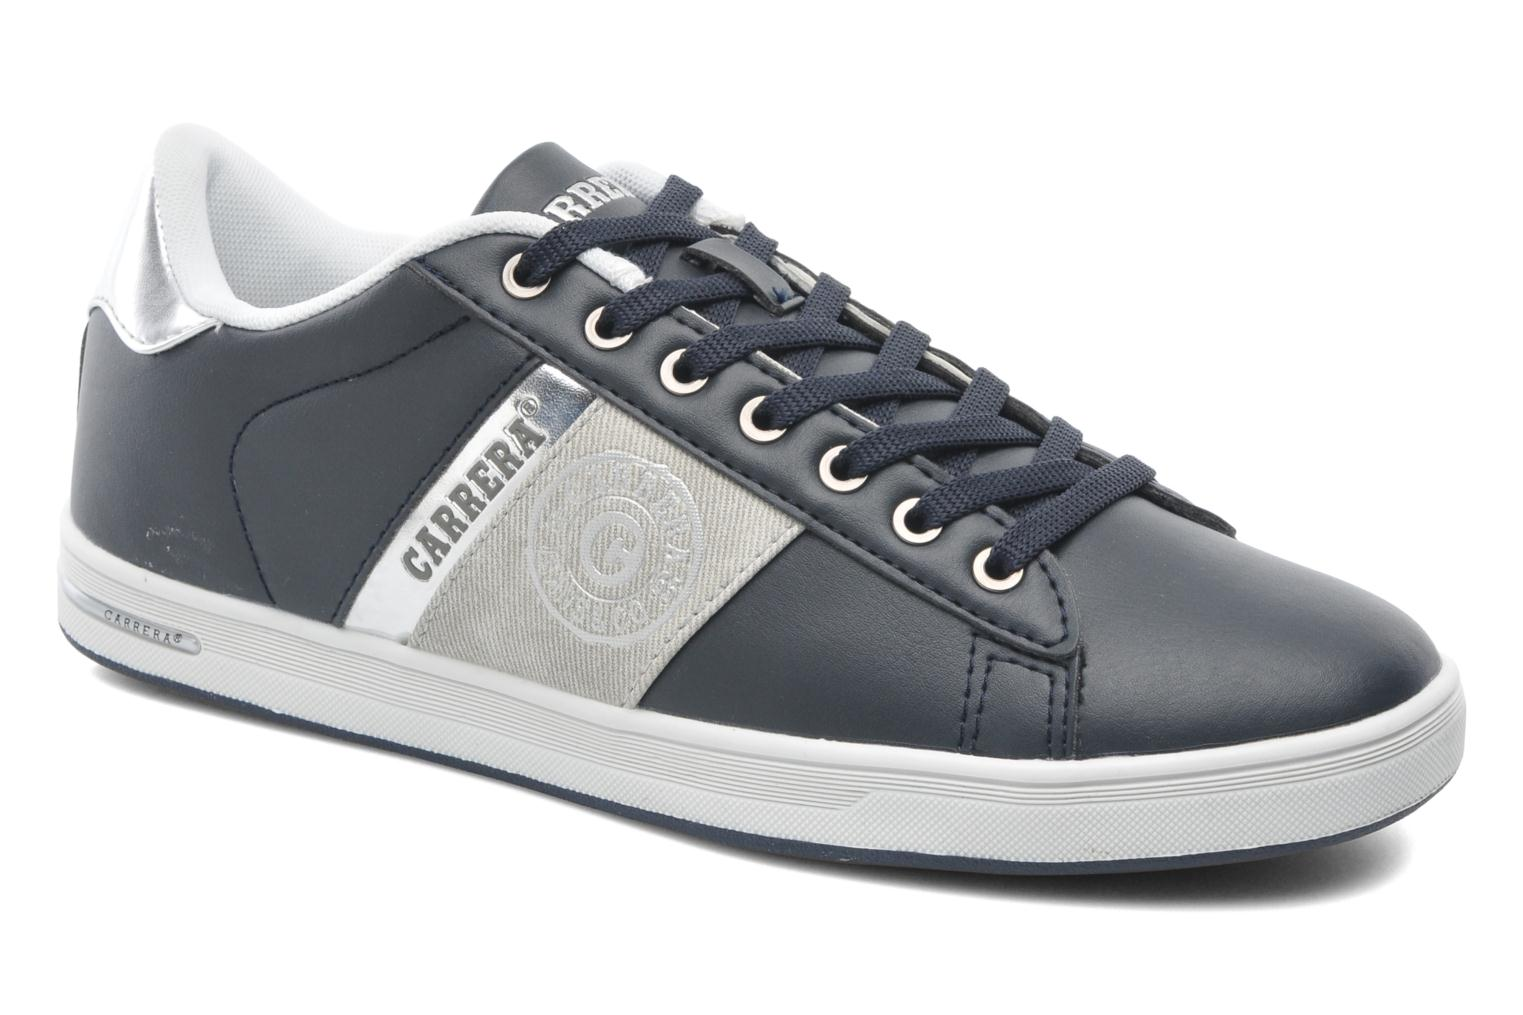 Sneakers Ace by Carrera